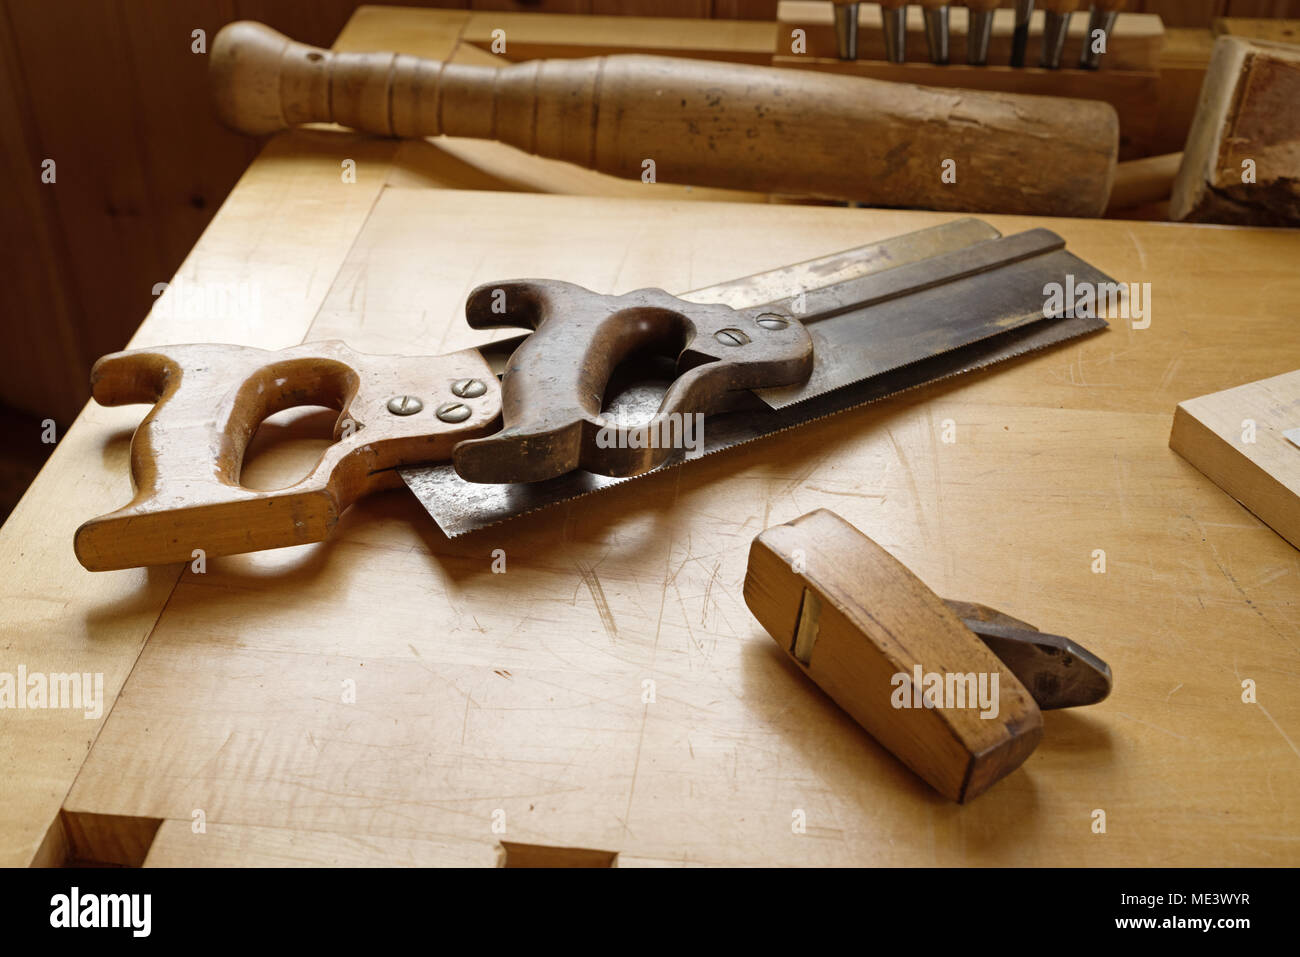 old vintage woodworking tools on a wood workbench - Stock Image